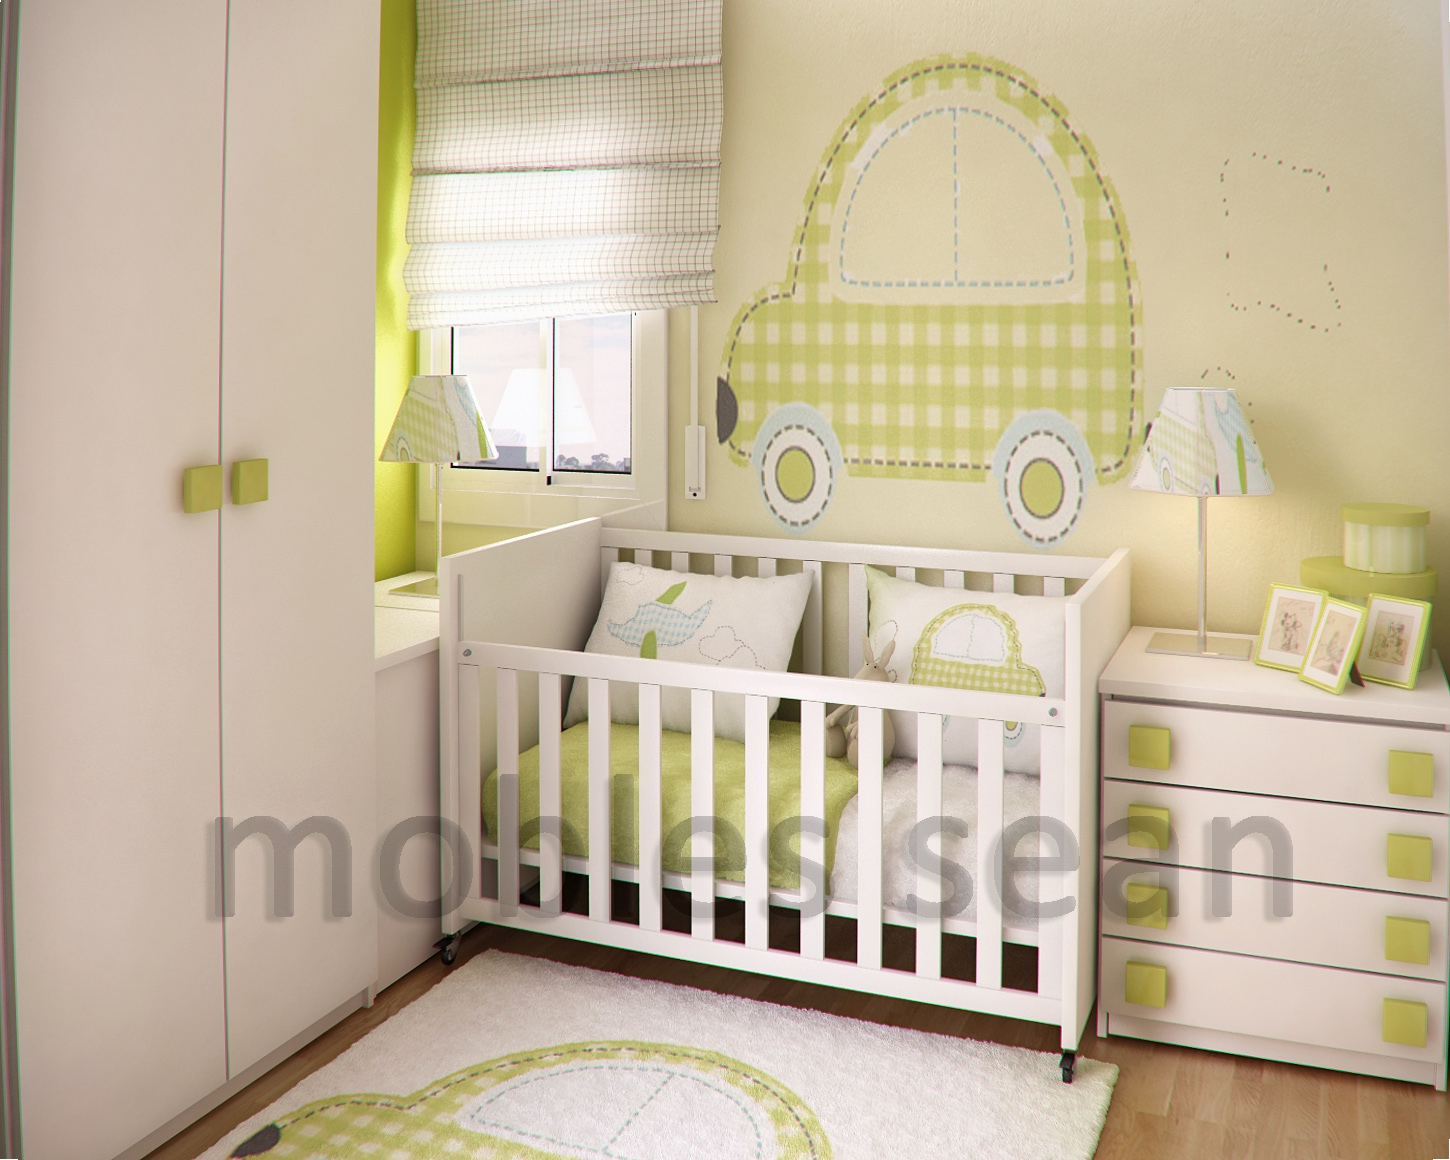 Space saving designs for small kids rooms Baby designs for rooms